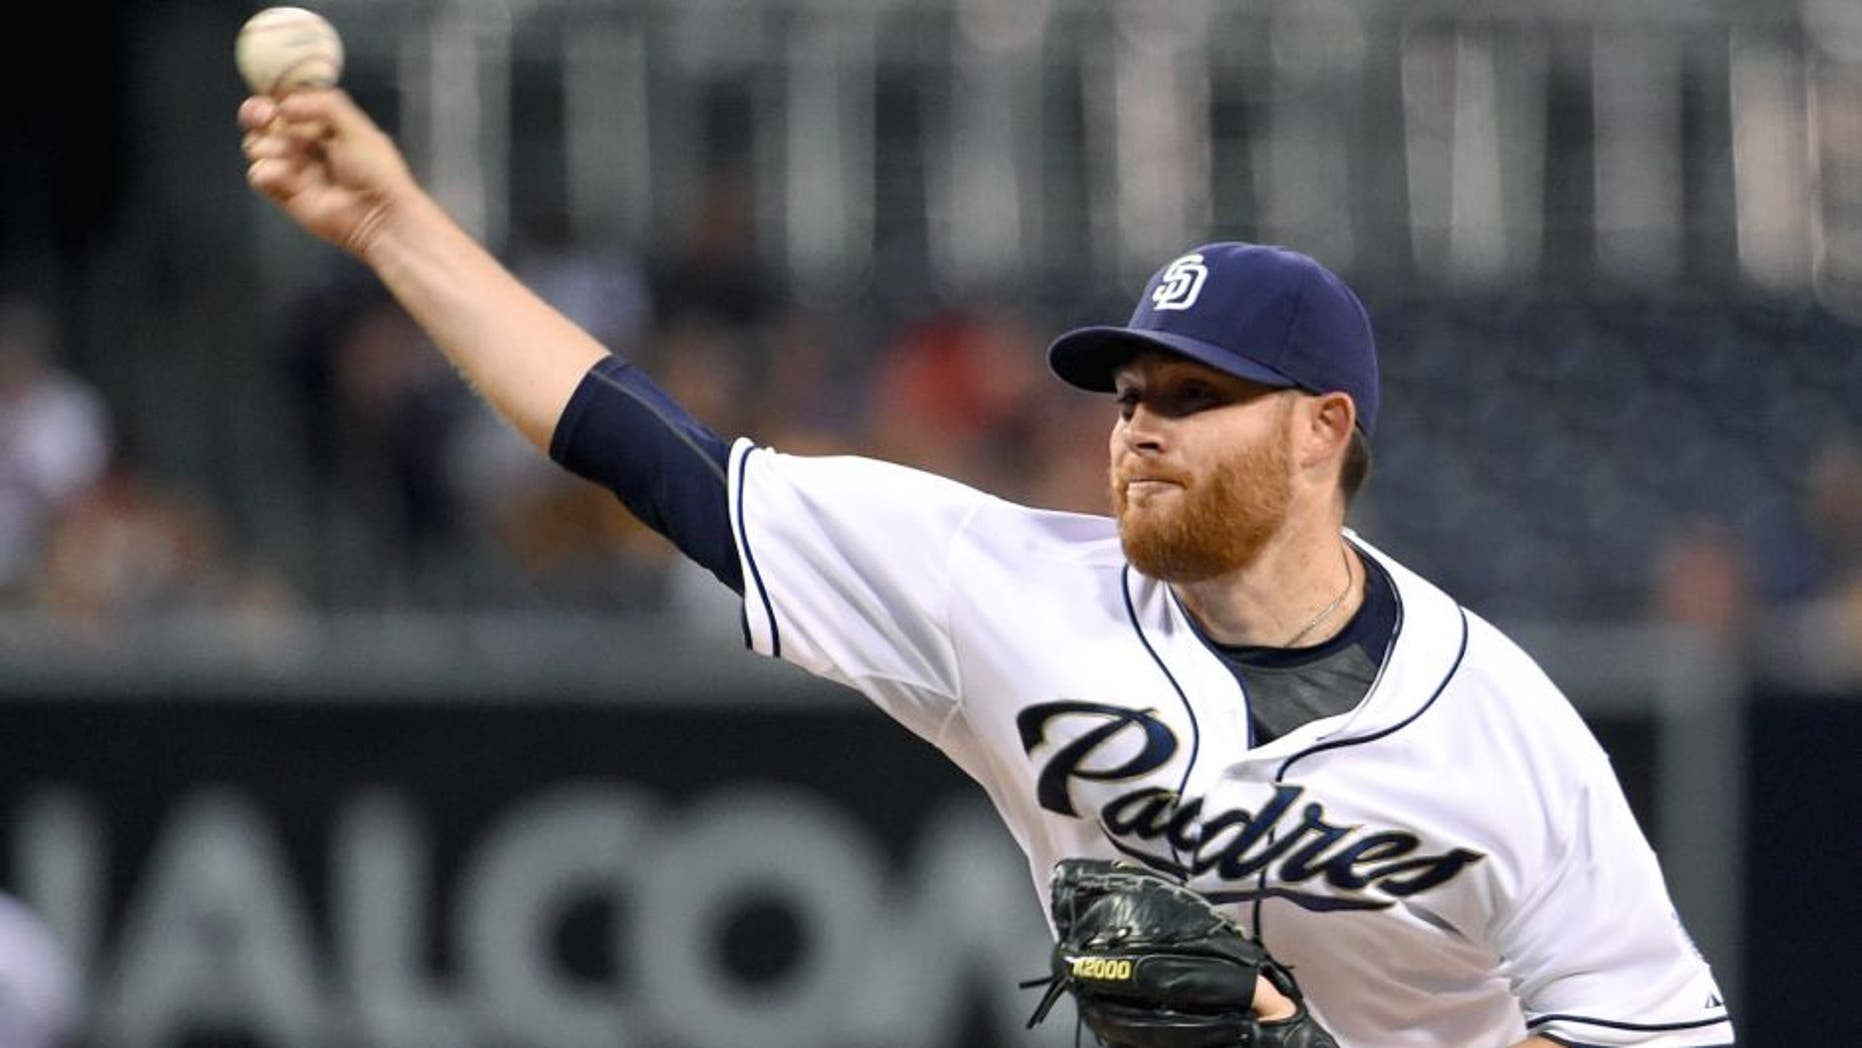 SAN DIEGO, CA - SEPTEMBER 2: Ian Kennedy #22 of the San Diego Padres pitches during the first inning of a baseball game against the Texas Rangers at Petco Park September, 2, 2015 in San Diego, California. (Photo by Denis Poroy/Getty Images)